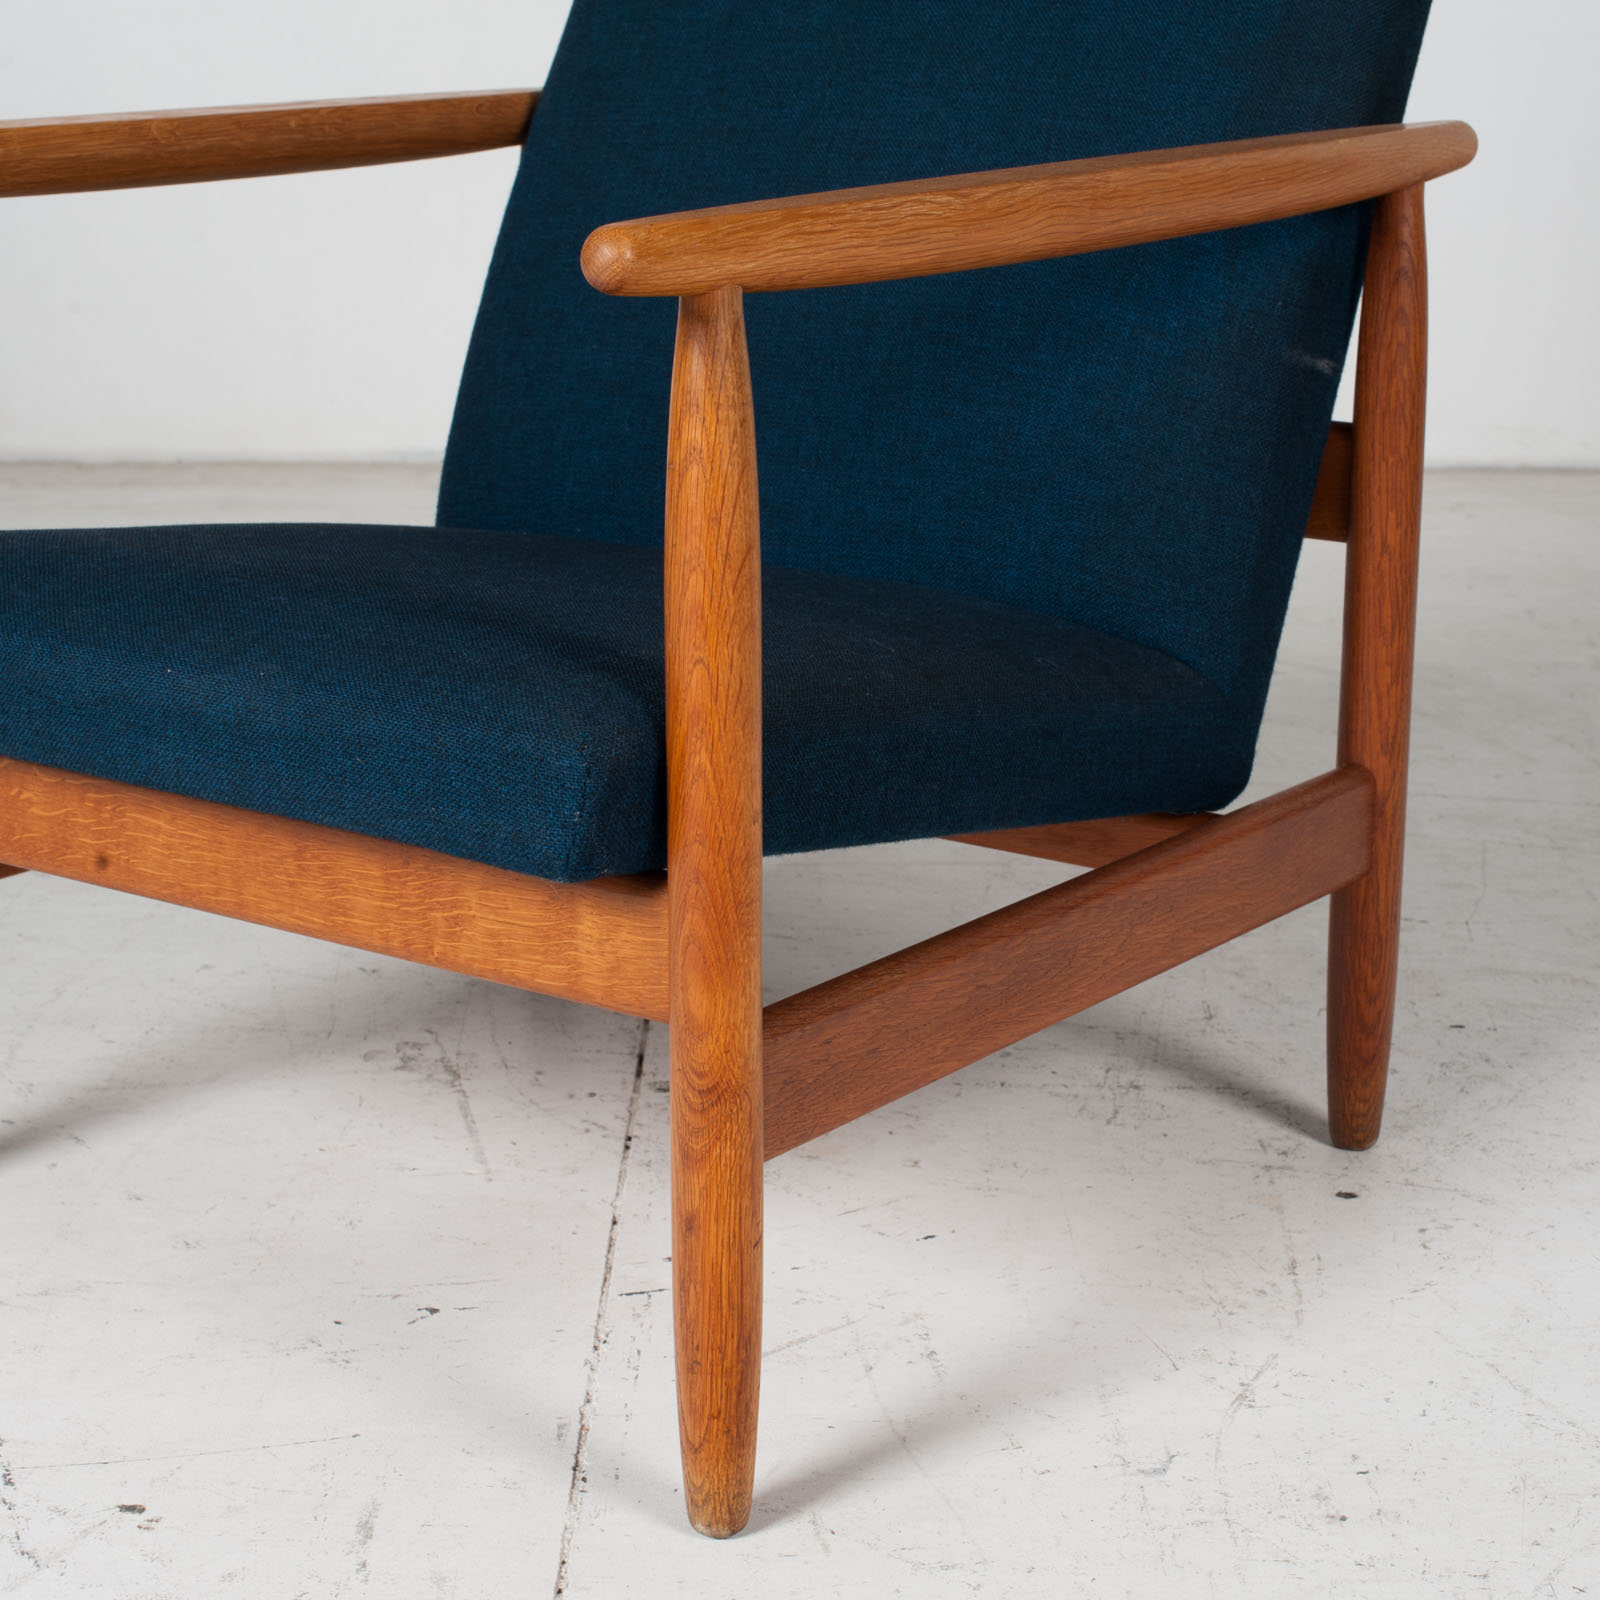 Armchair By Ejvind A. Johansson In Blue Upholstery, 1960s, Denmark6